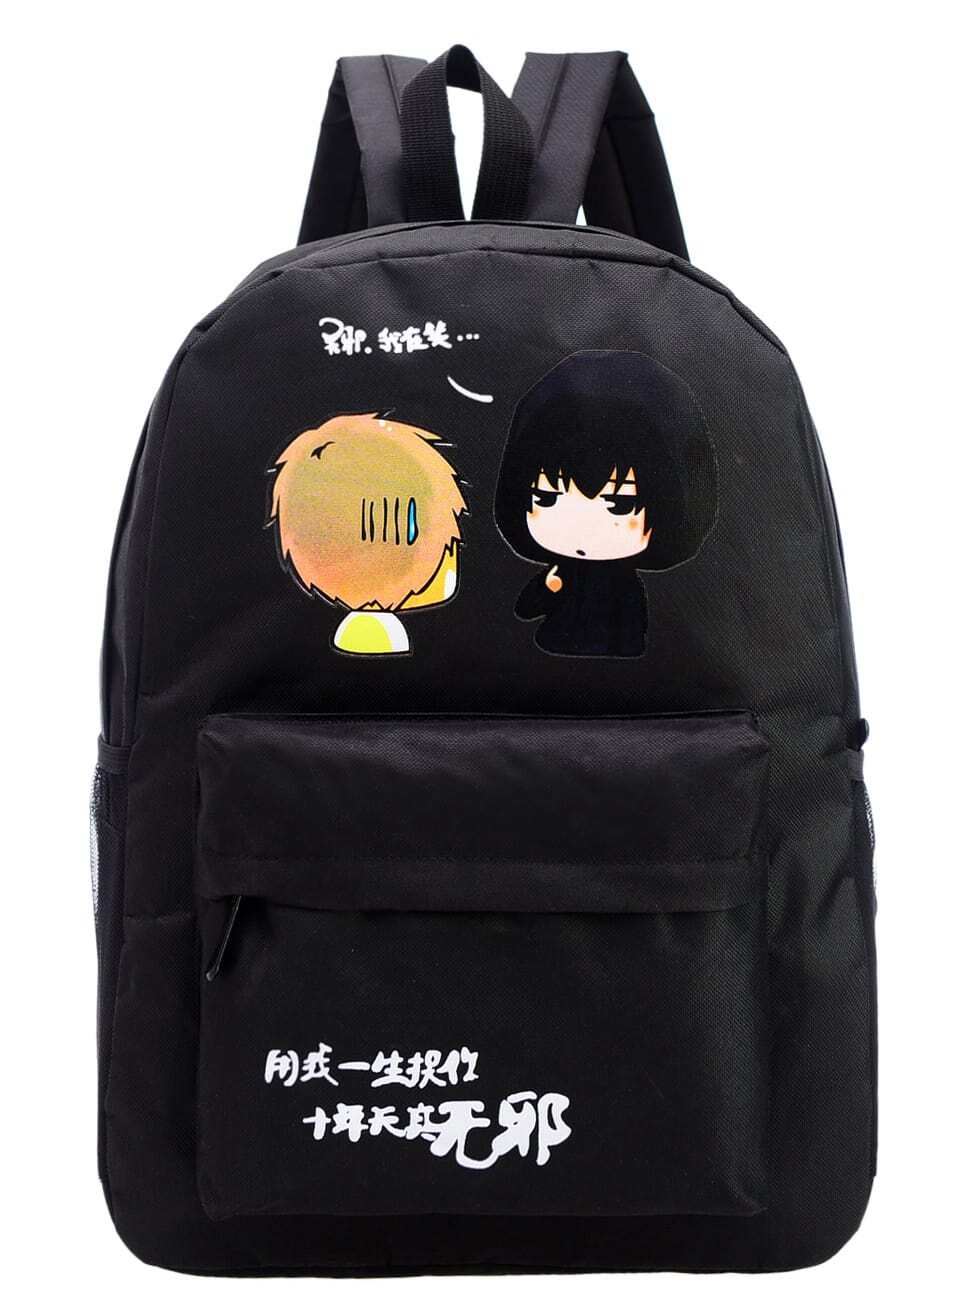 Cartoon Print Nylon Backpack - BlackCartoon Print Nylon Backpack - Black<br><br>color: Black<br>size: None